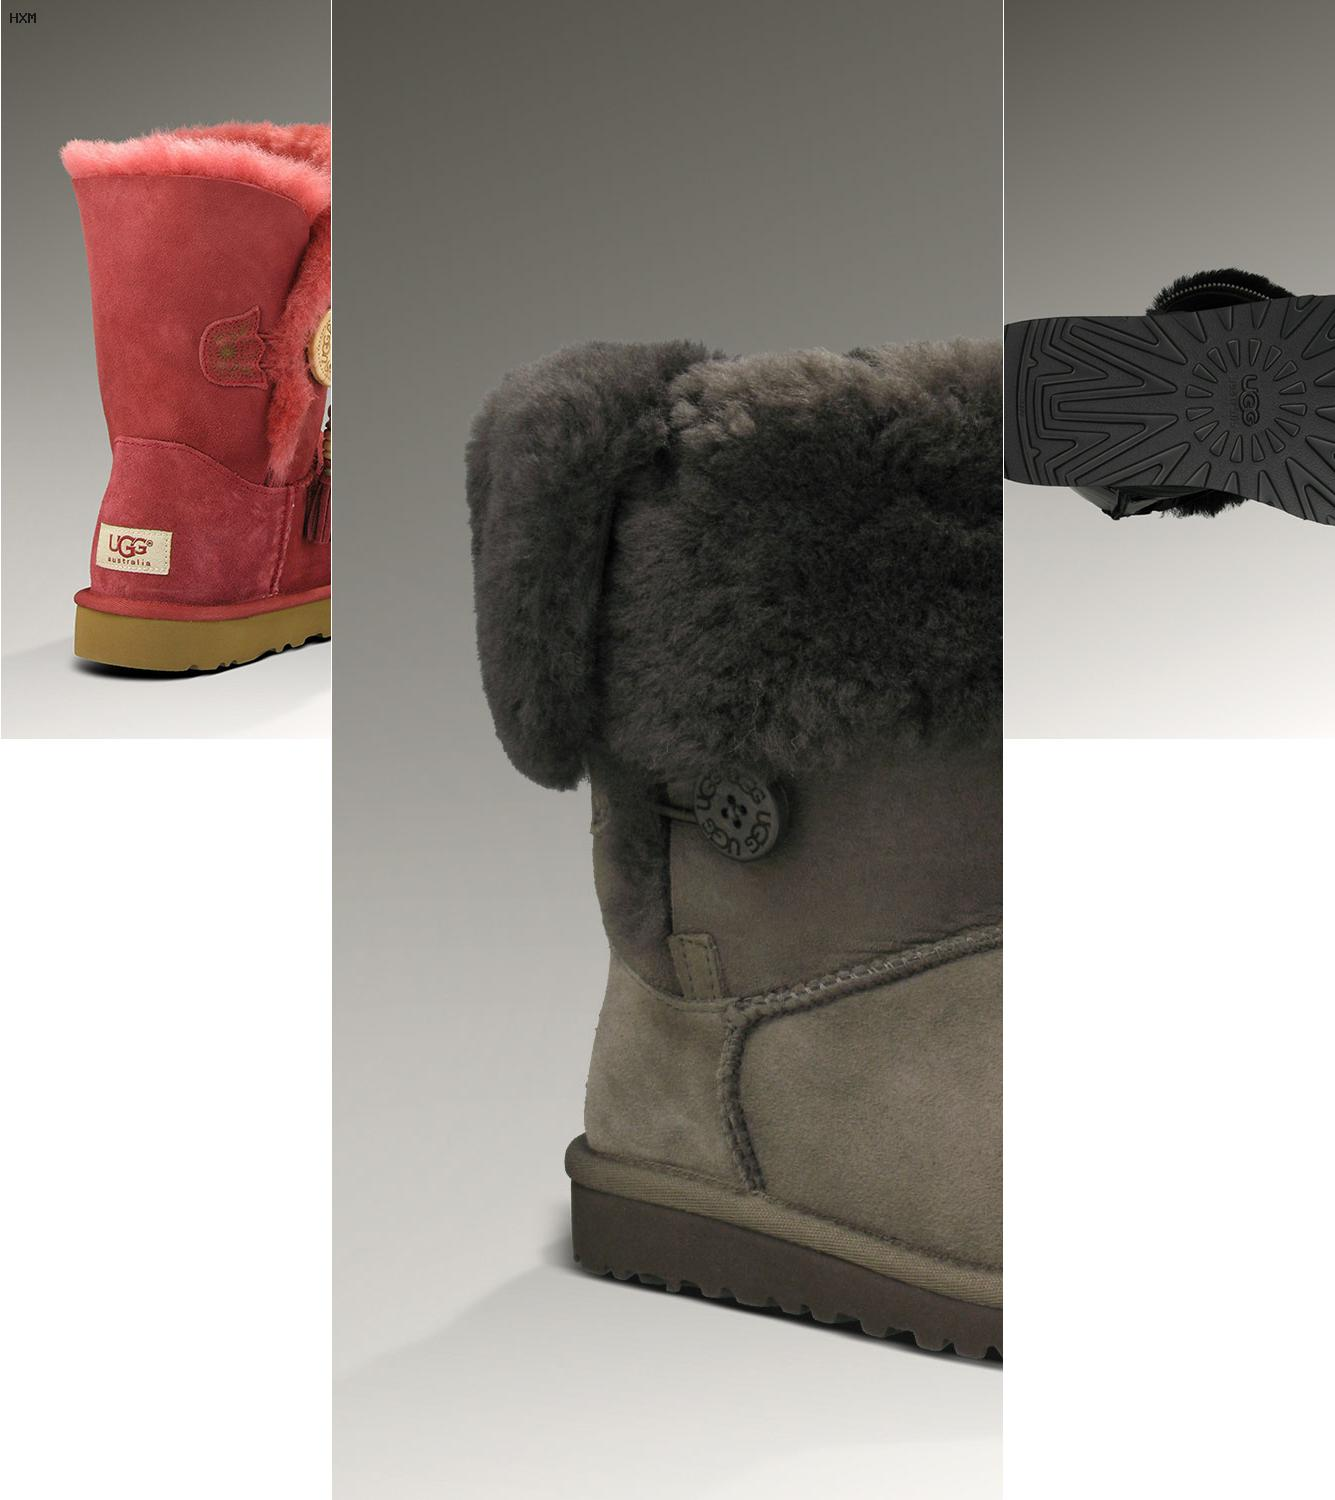 ugg a lacets